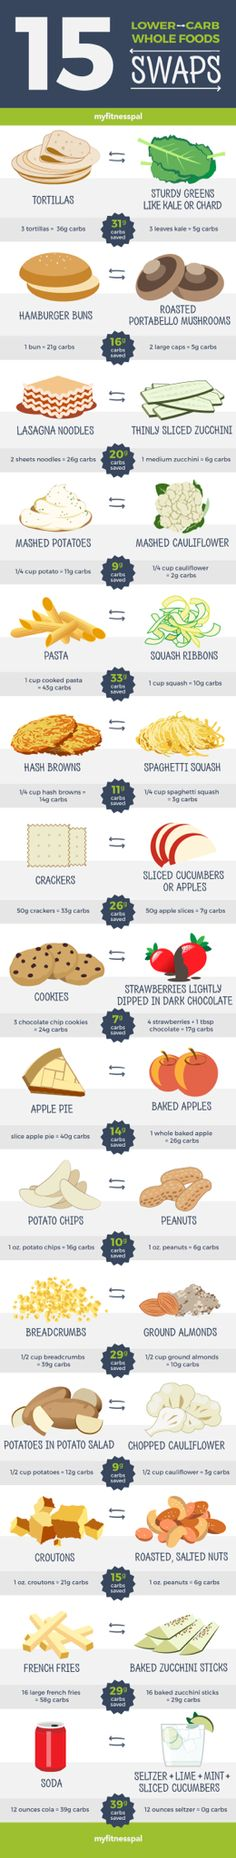 Healthier food alternatives. Will try these!